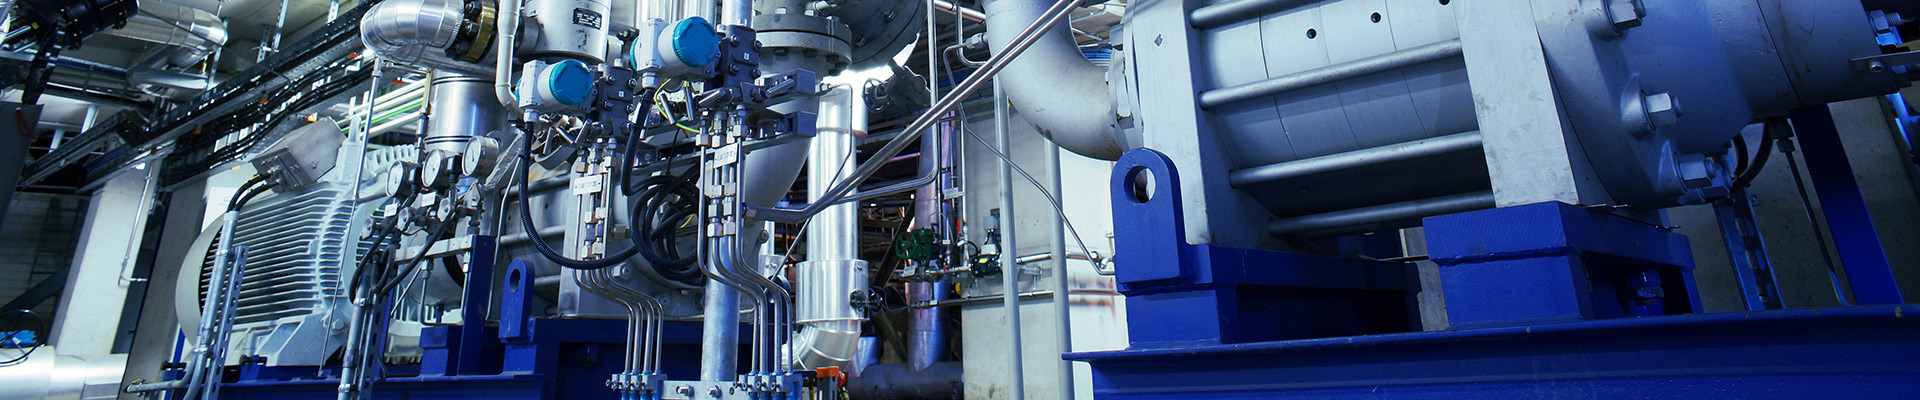 Pumps packaged Systems Skids and Ballast Water Treatment Systems